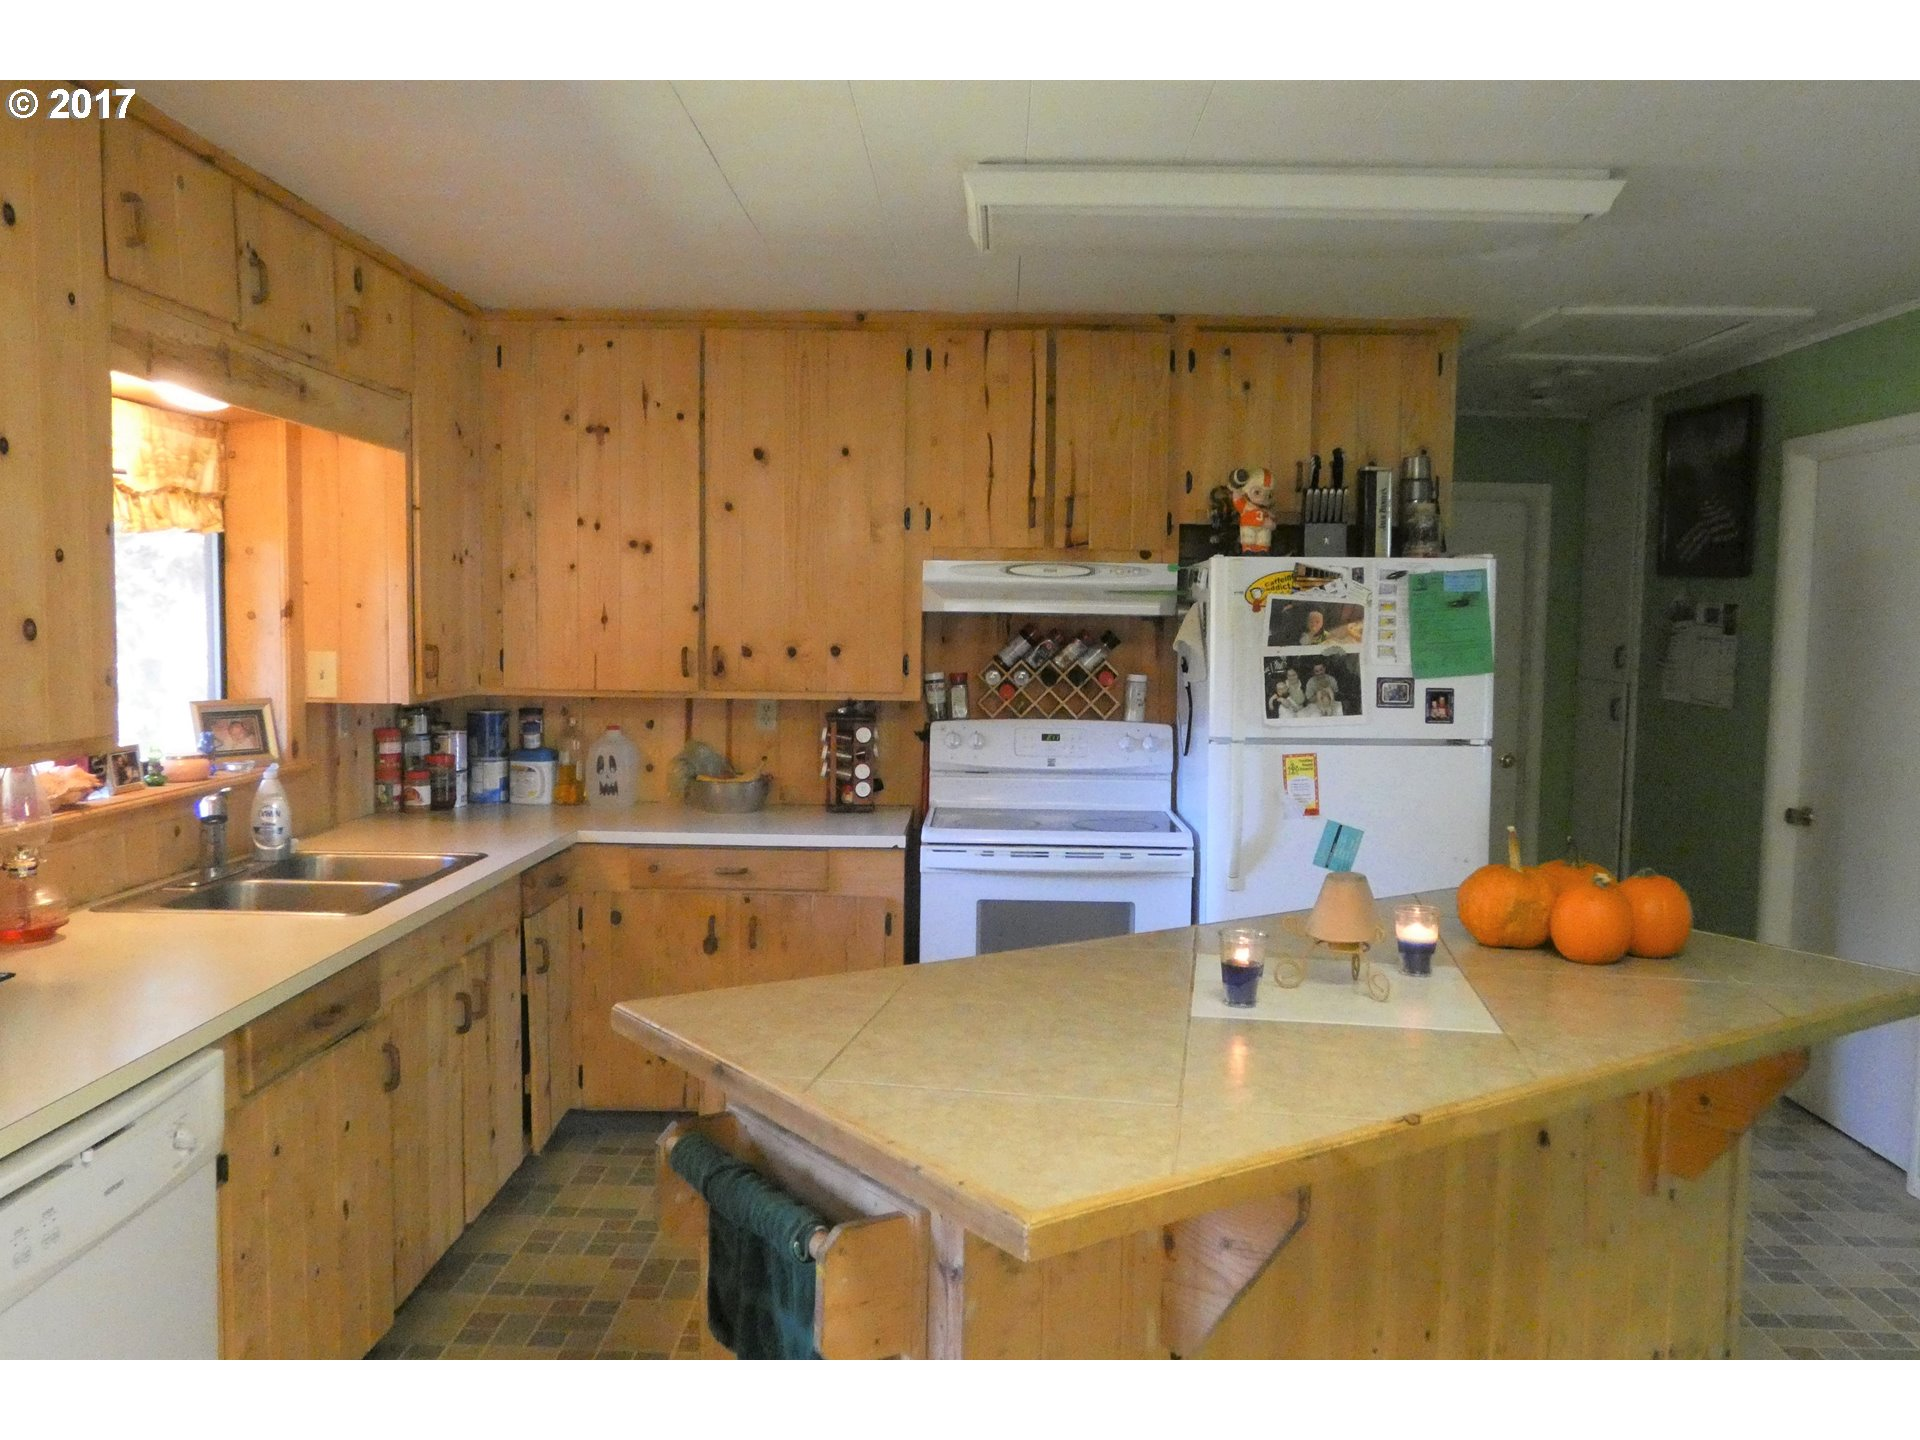 253 COAST GUARD HILL RD, PORT ORFORD, OR 97465  Photo 3